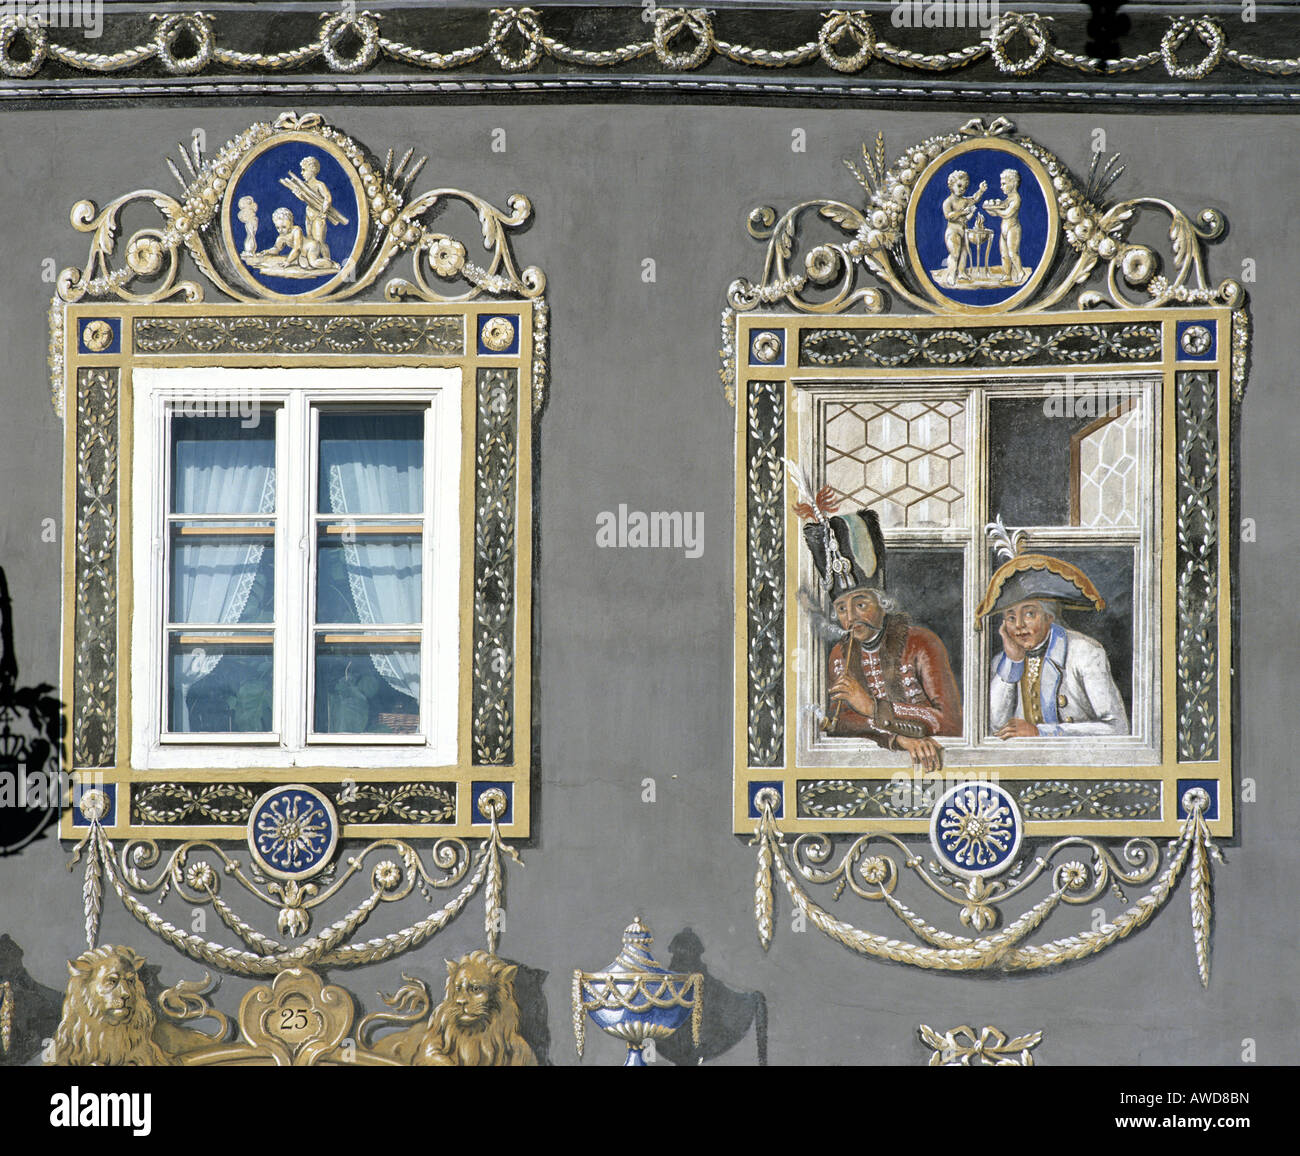 Garmisch-Partenkirchen, zum Husar Inn, painted windows, Upper Bavaria, Bavaria, Germany, Europe - Stock Image